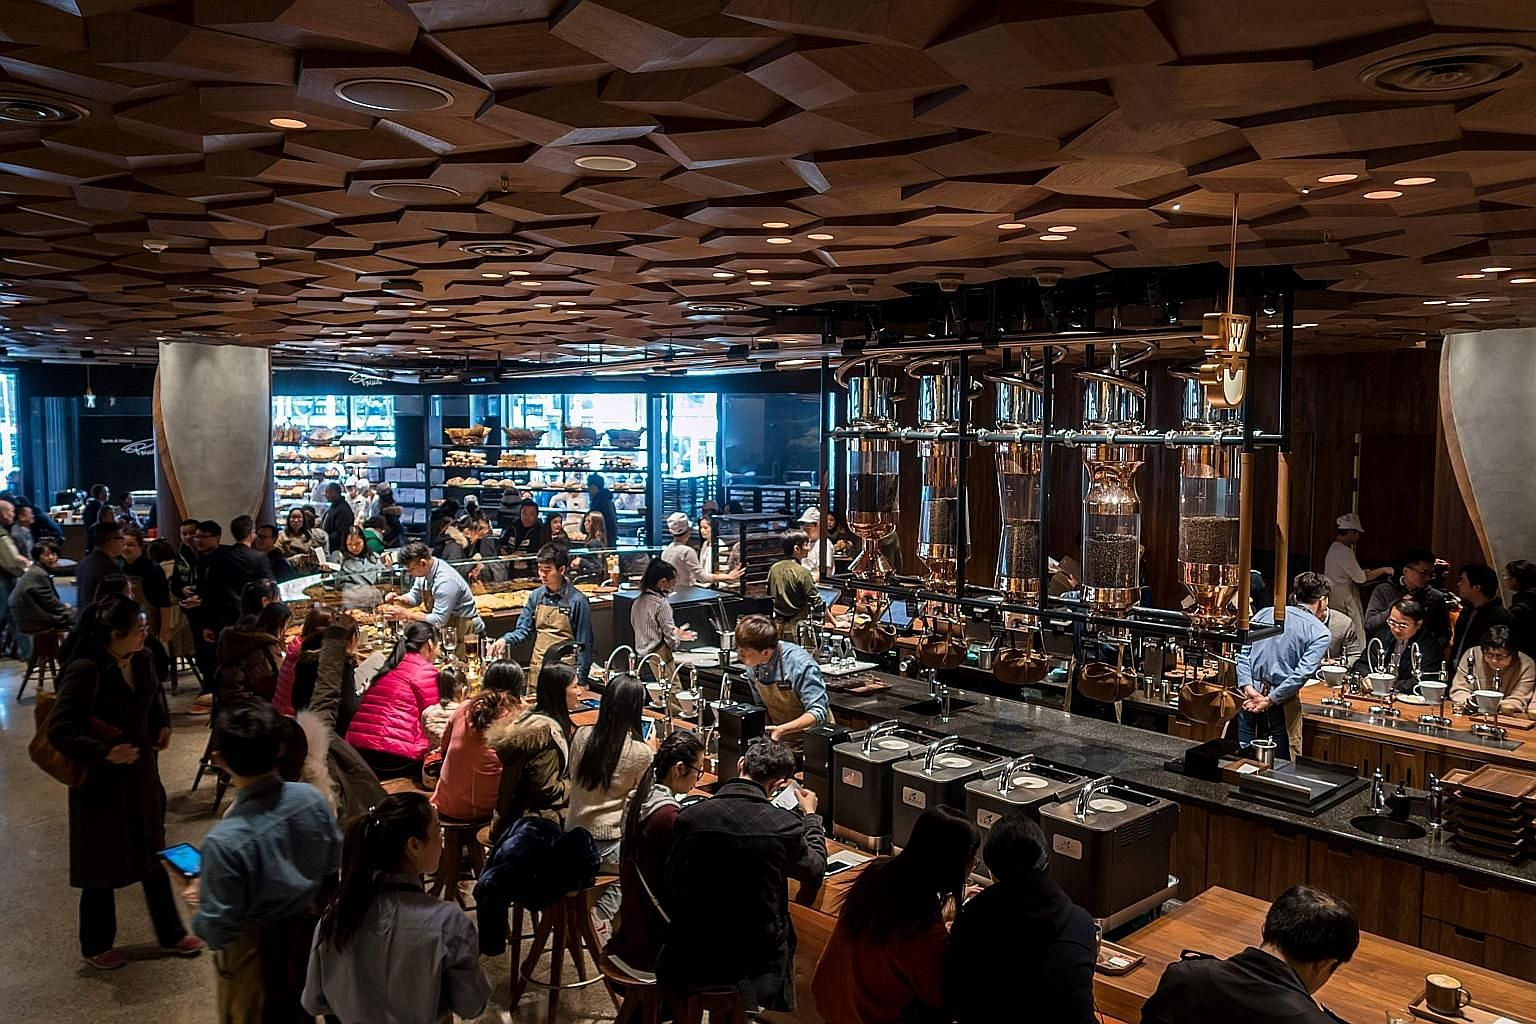 The Starbucks Reserve Roastery outlet in Shanghai yesterday. It spans 2,700 sq m - nearly half a football field.